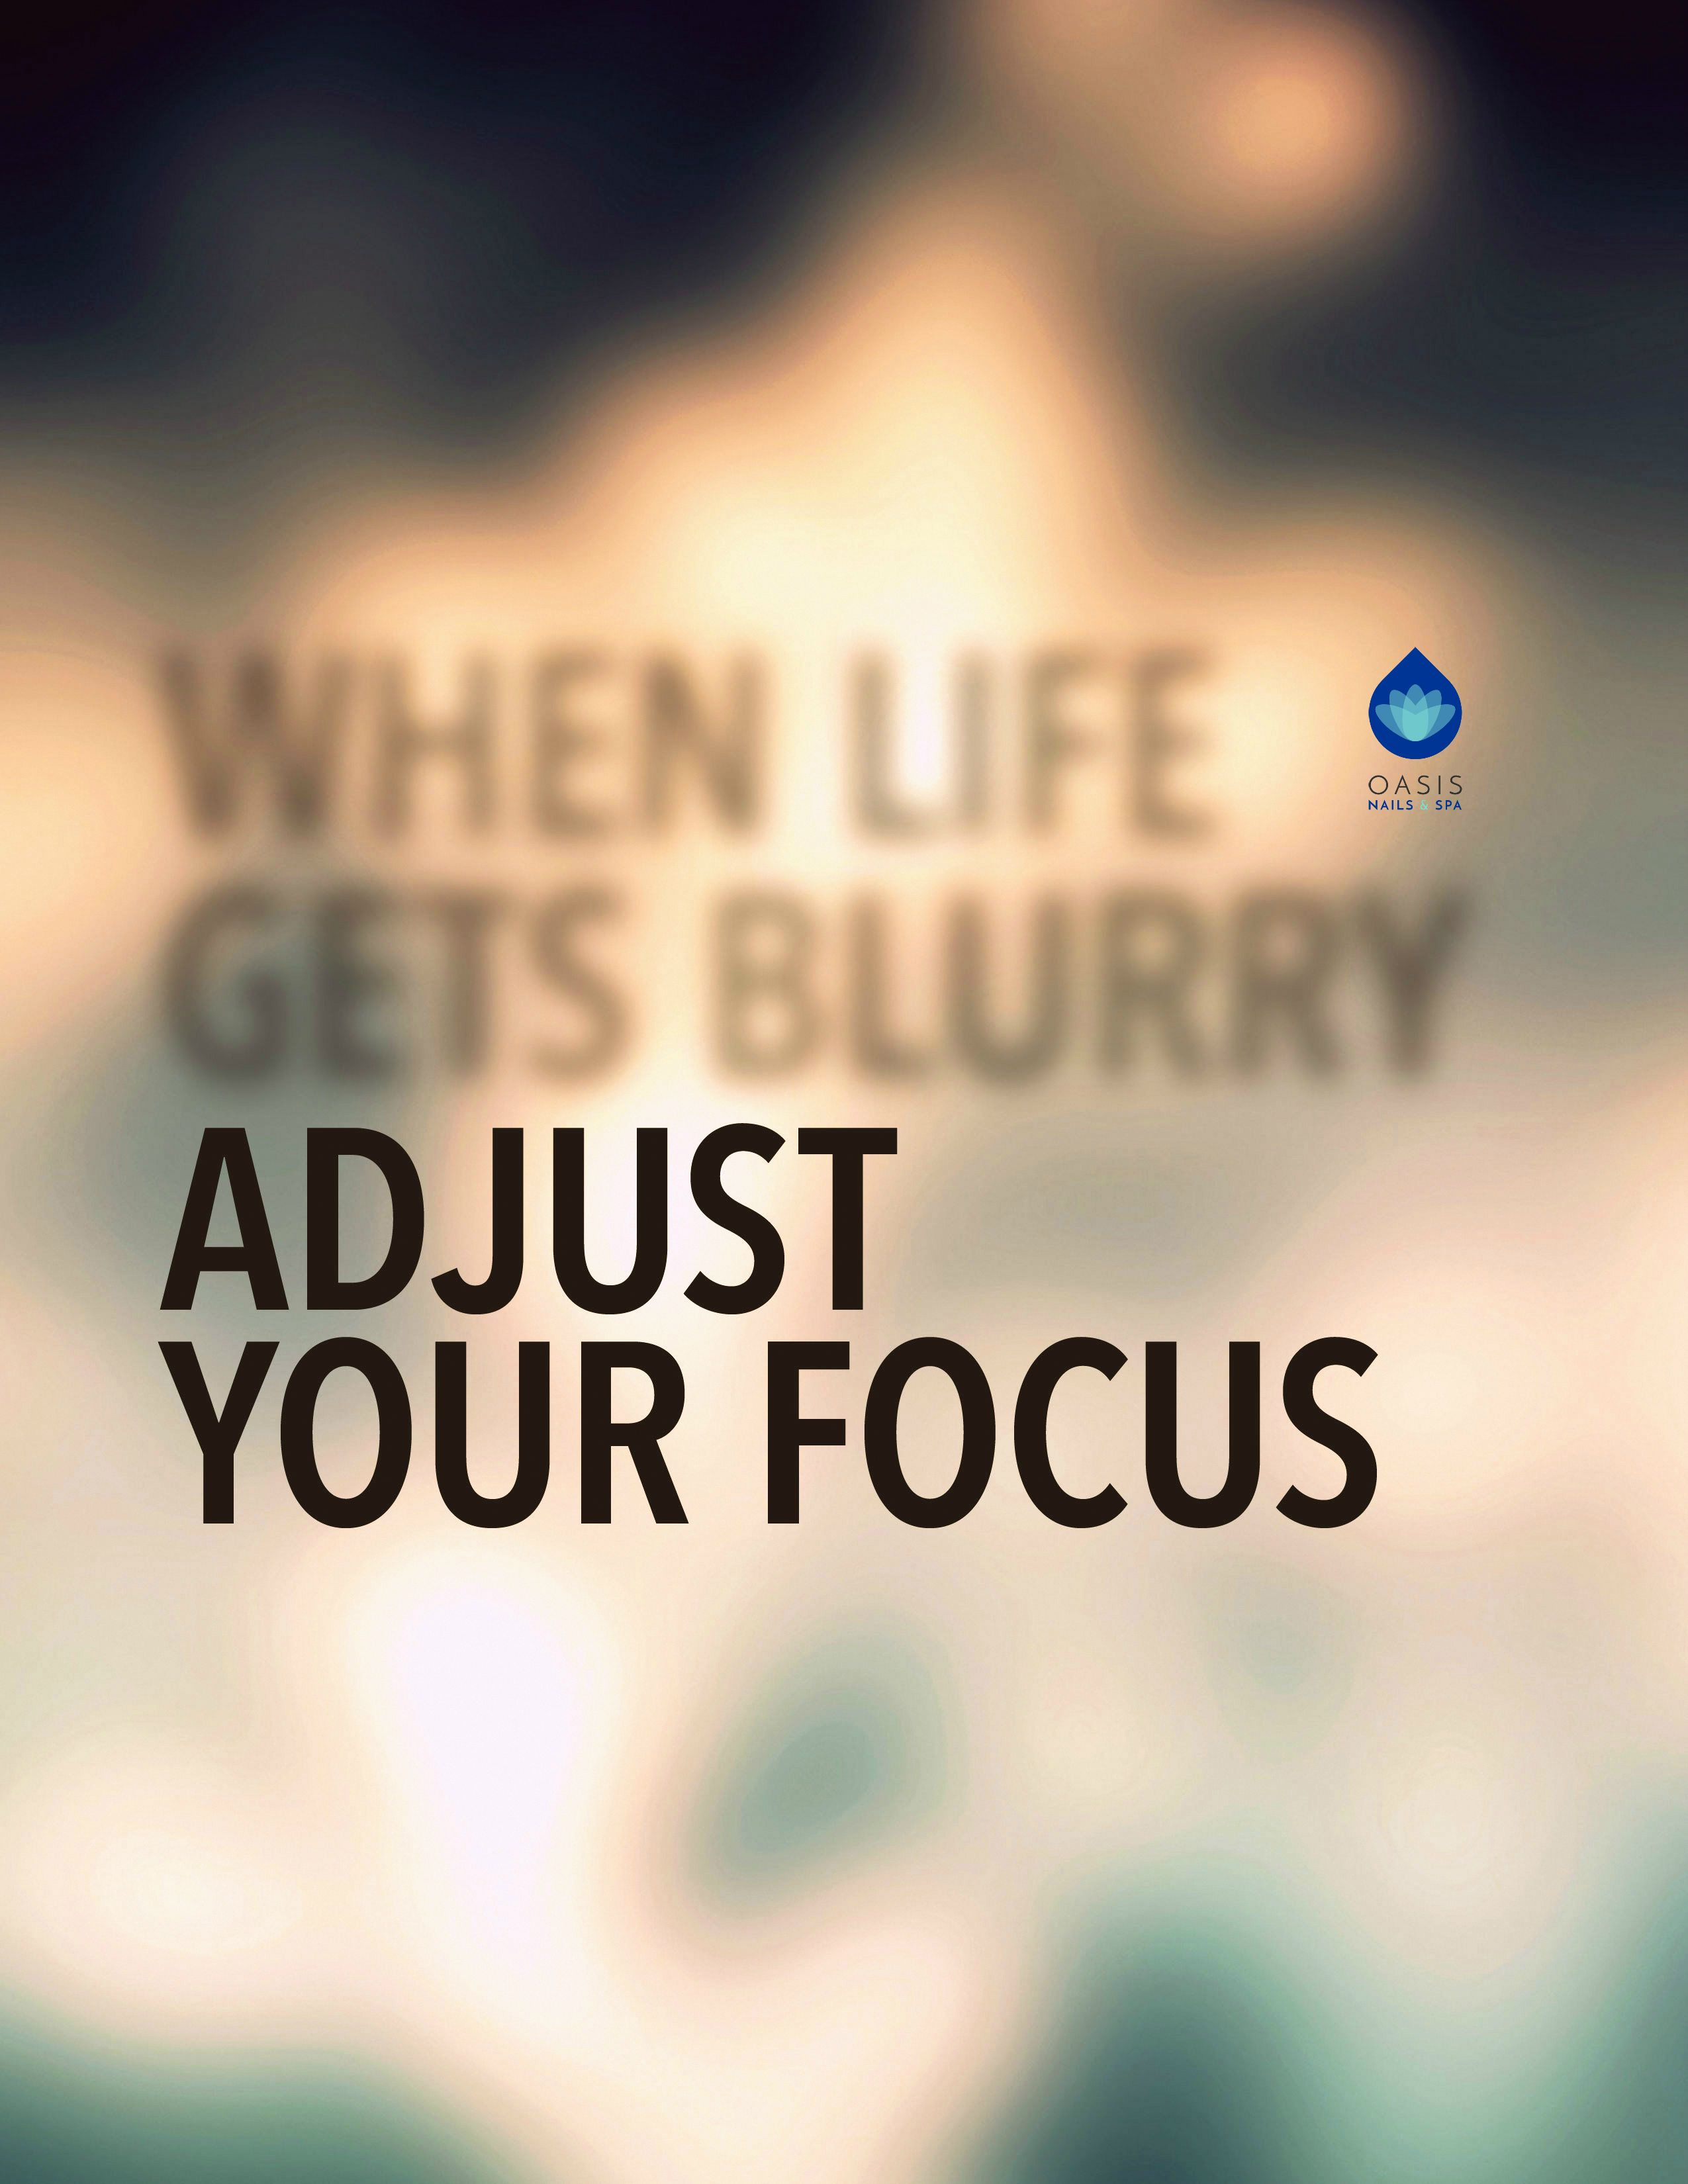 When Life Gets Blurry Adjust Your Focus Beauty Wellness Focus Quotes Focus Quotes Inspiration Clarity Quotes